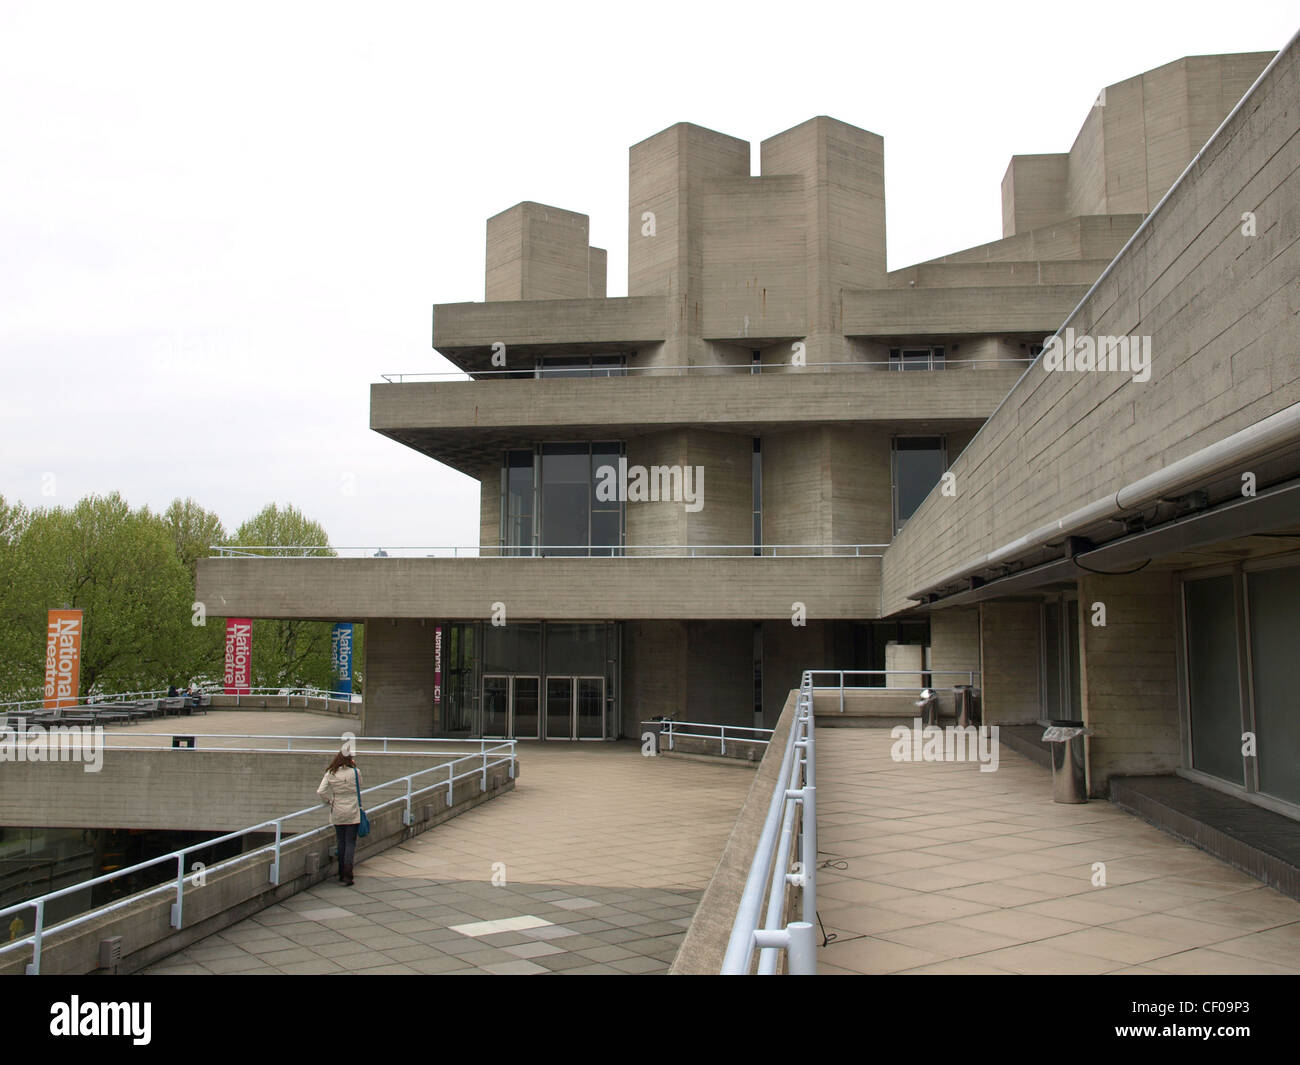 The National Theatre iconic new brutalist architecture in London, England, UK - Stock Image